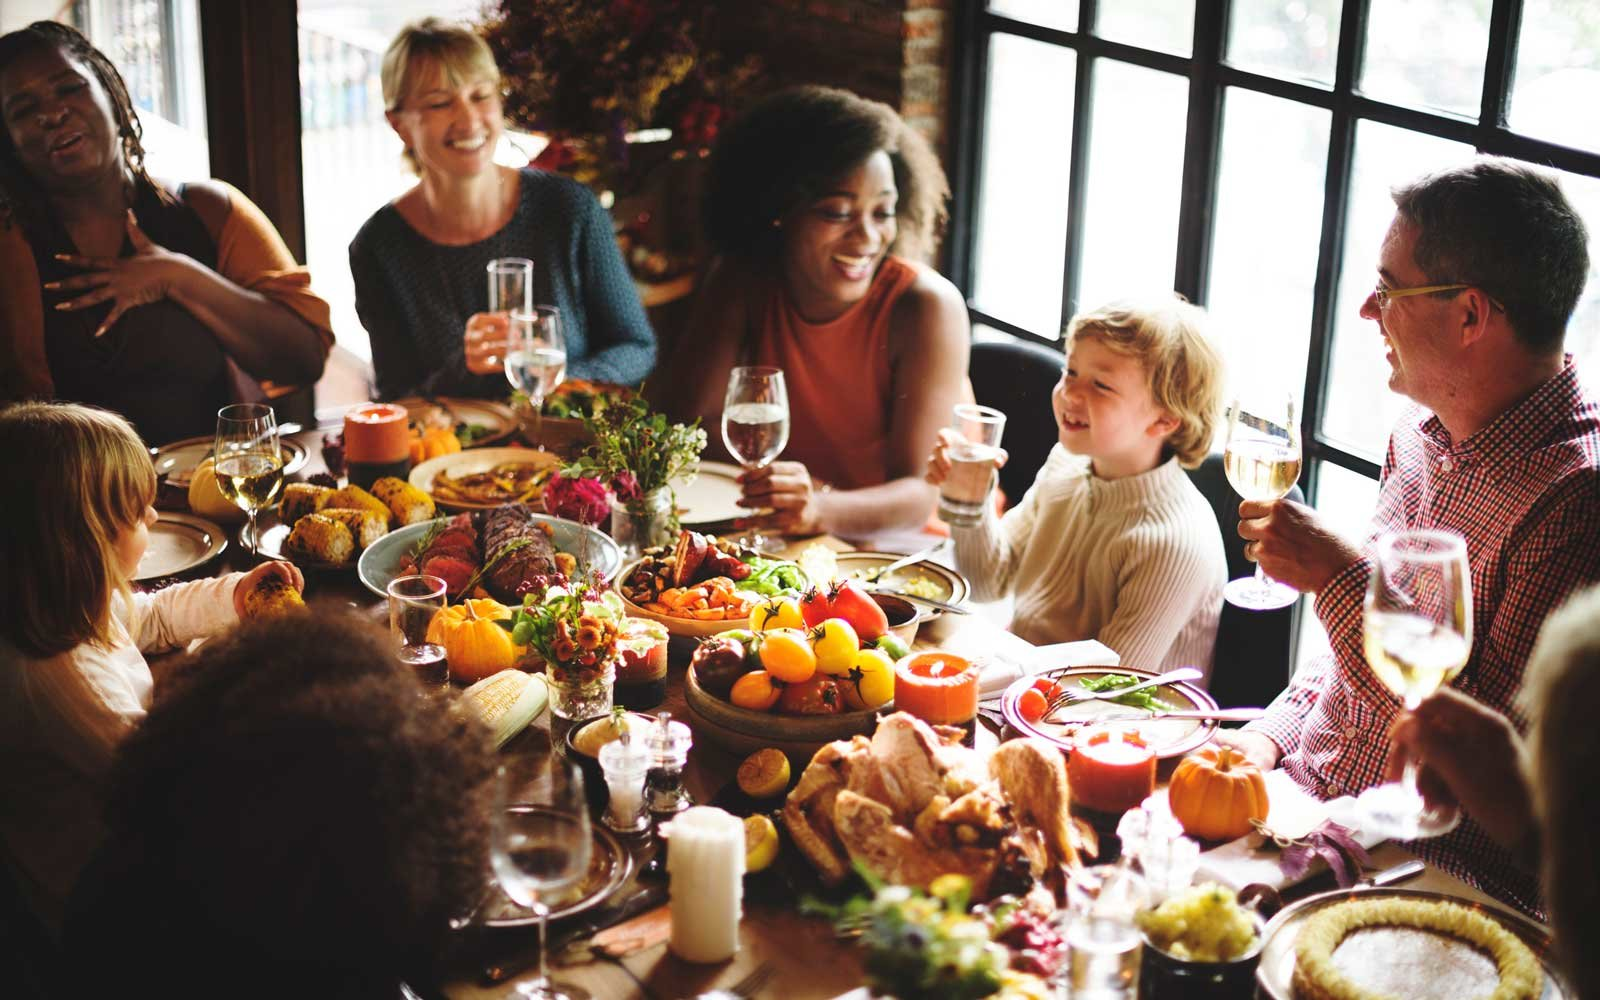 5 Tips For Not Ruining Your Thanksgiving Dinner With Politics